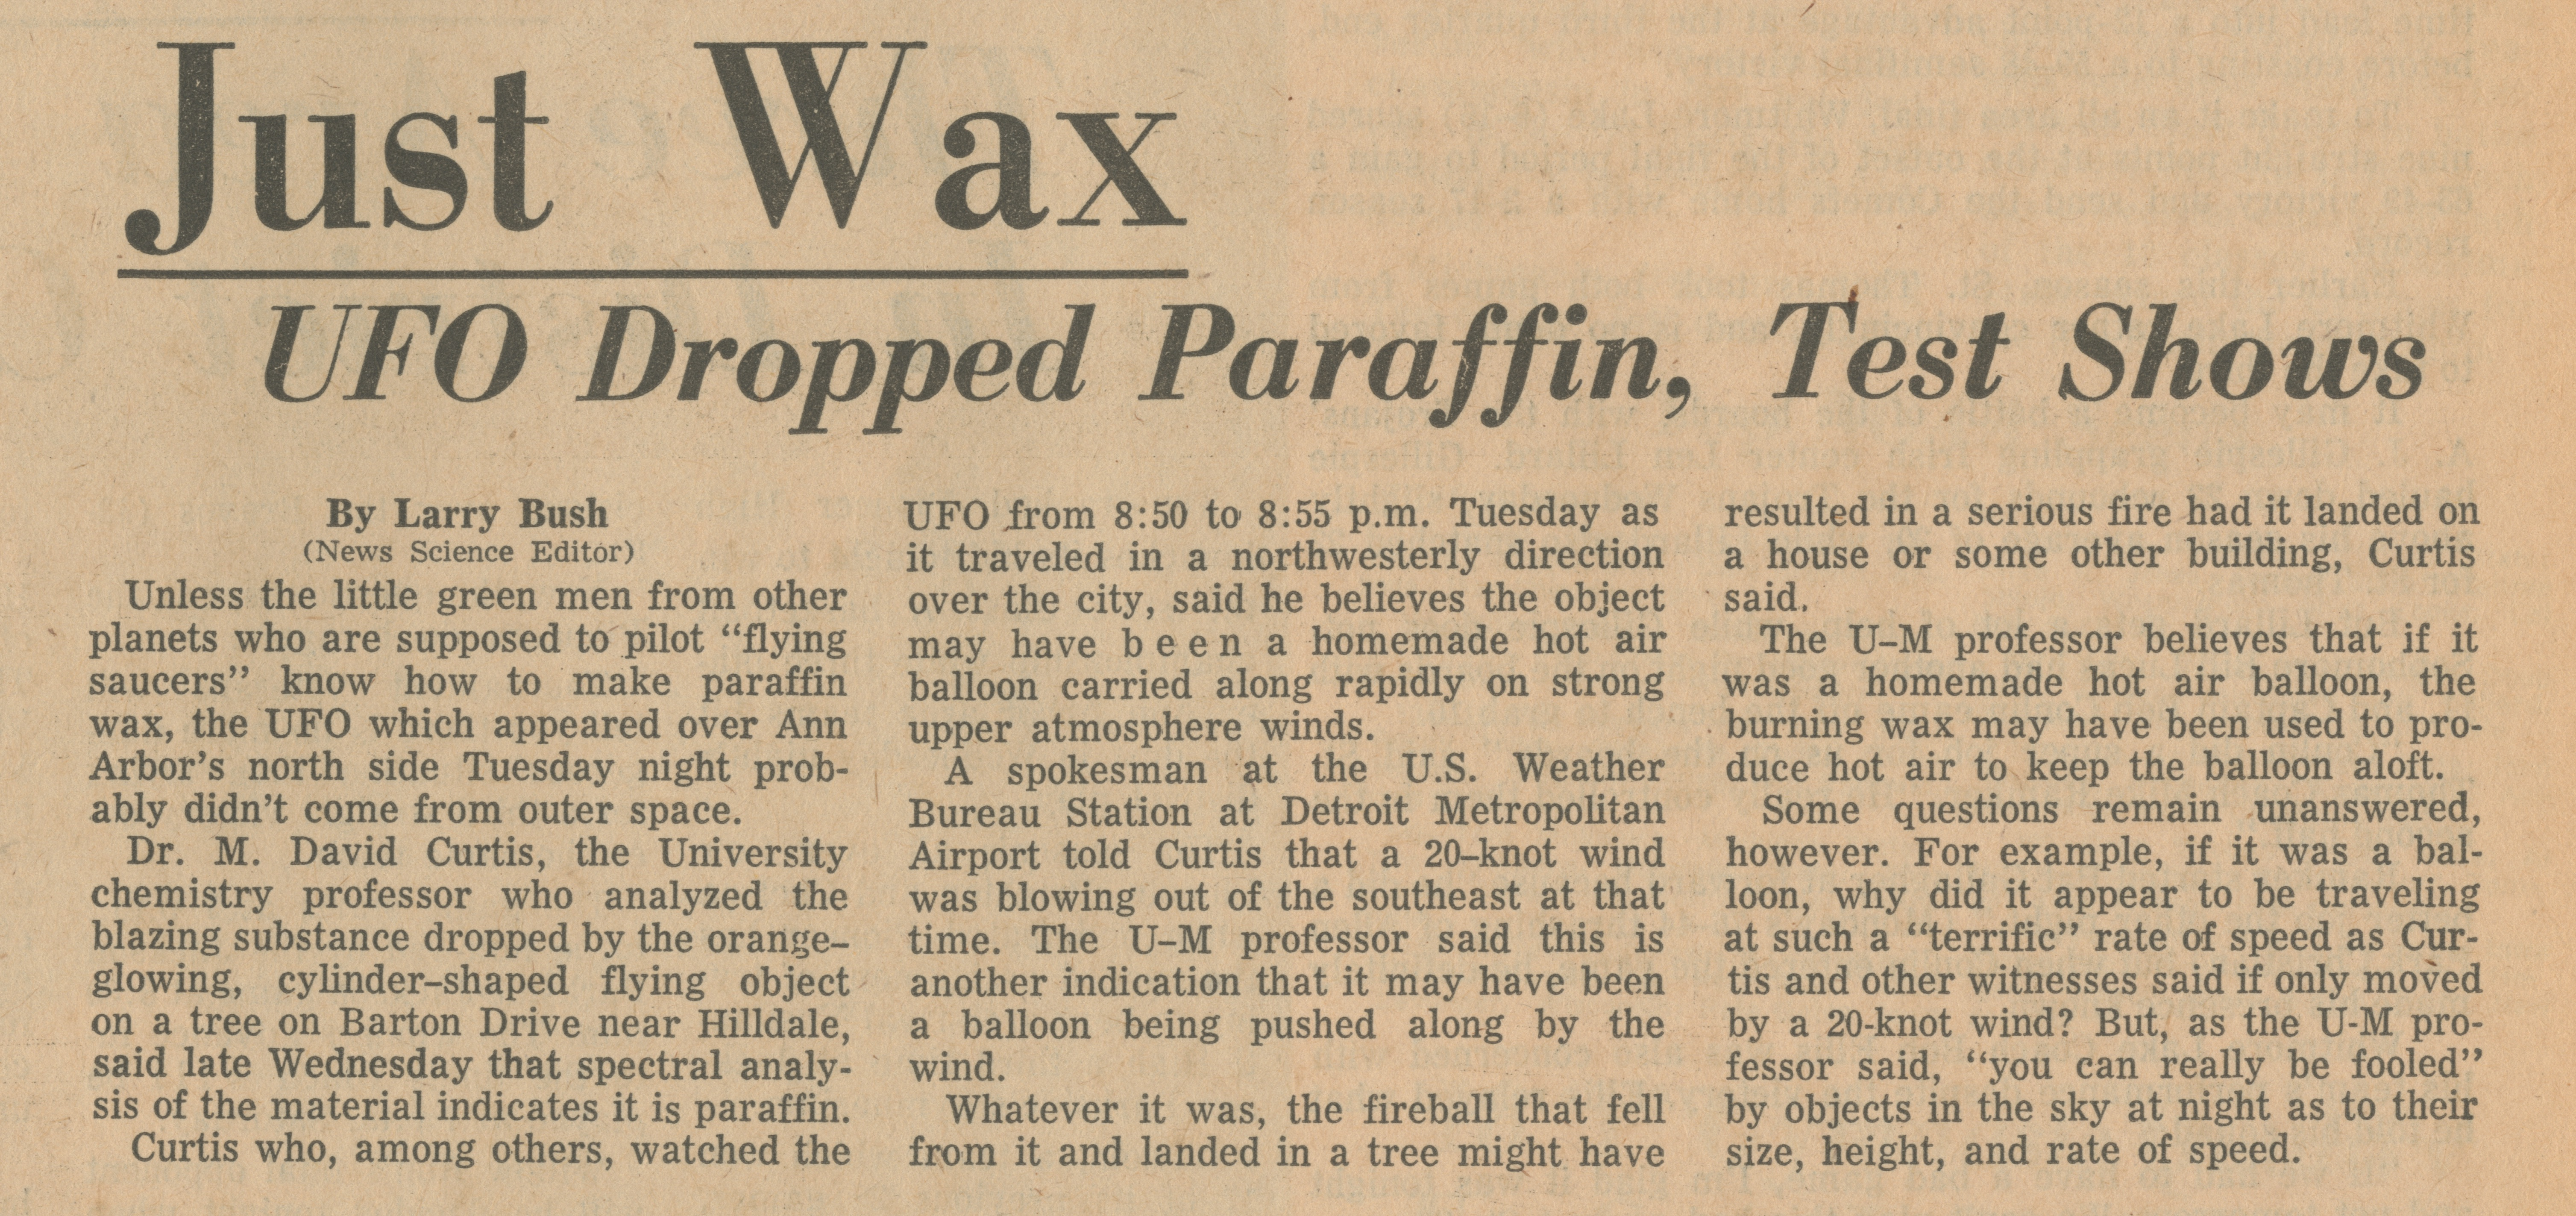 Just Wax - UFO Dropped Paraffin, Test Shows image